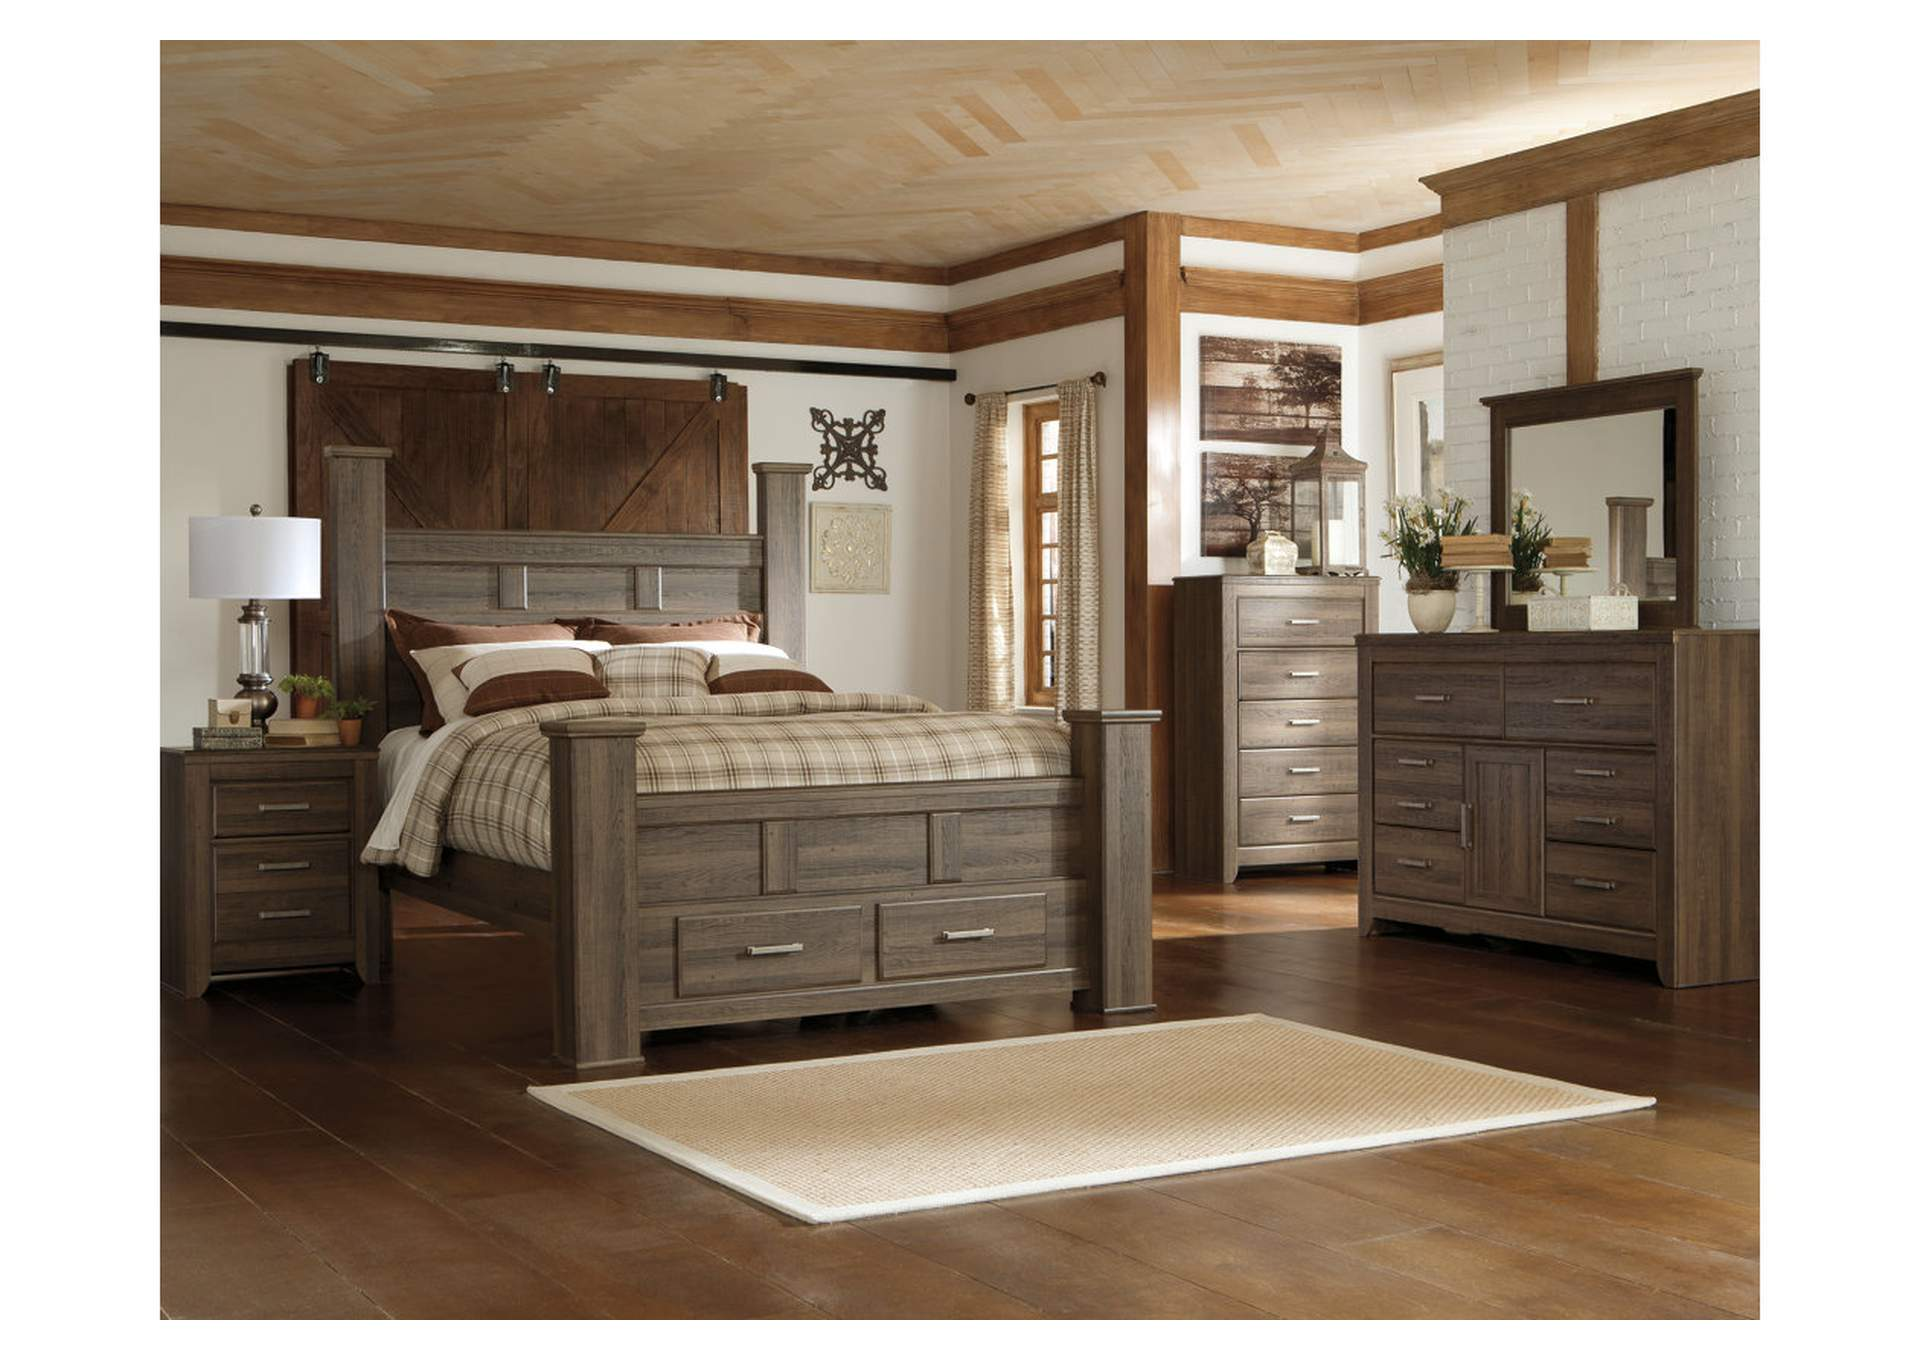 Juararo Queen Poster Storage Bed w/Dresser, Mirror & Nightstand,Signature Design by Ashley